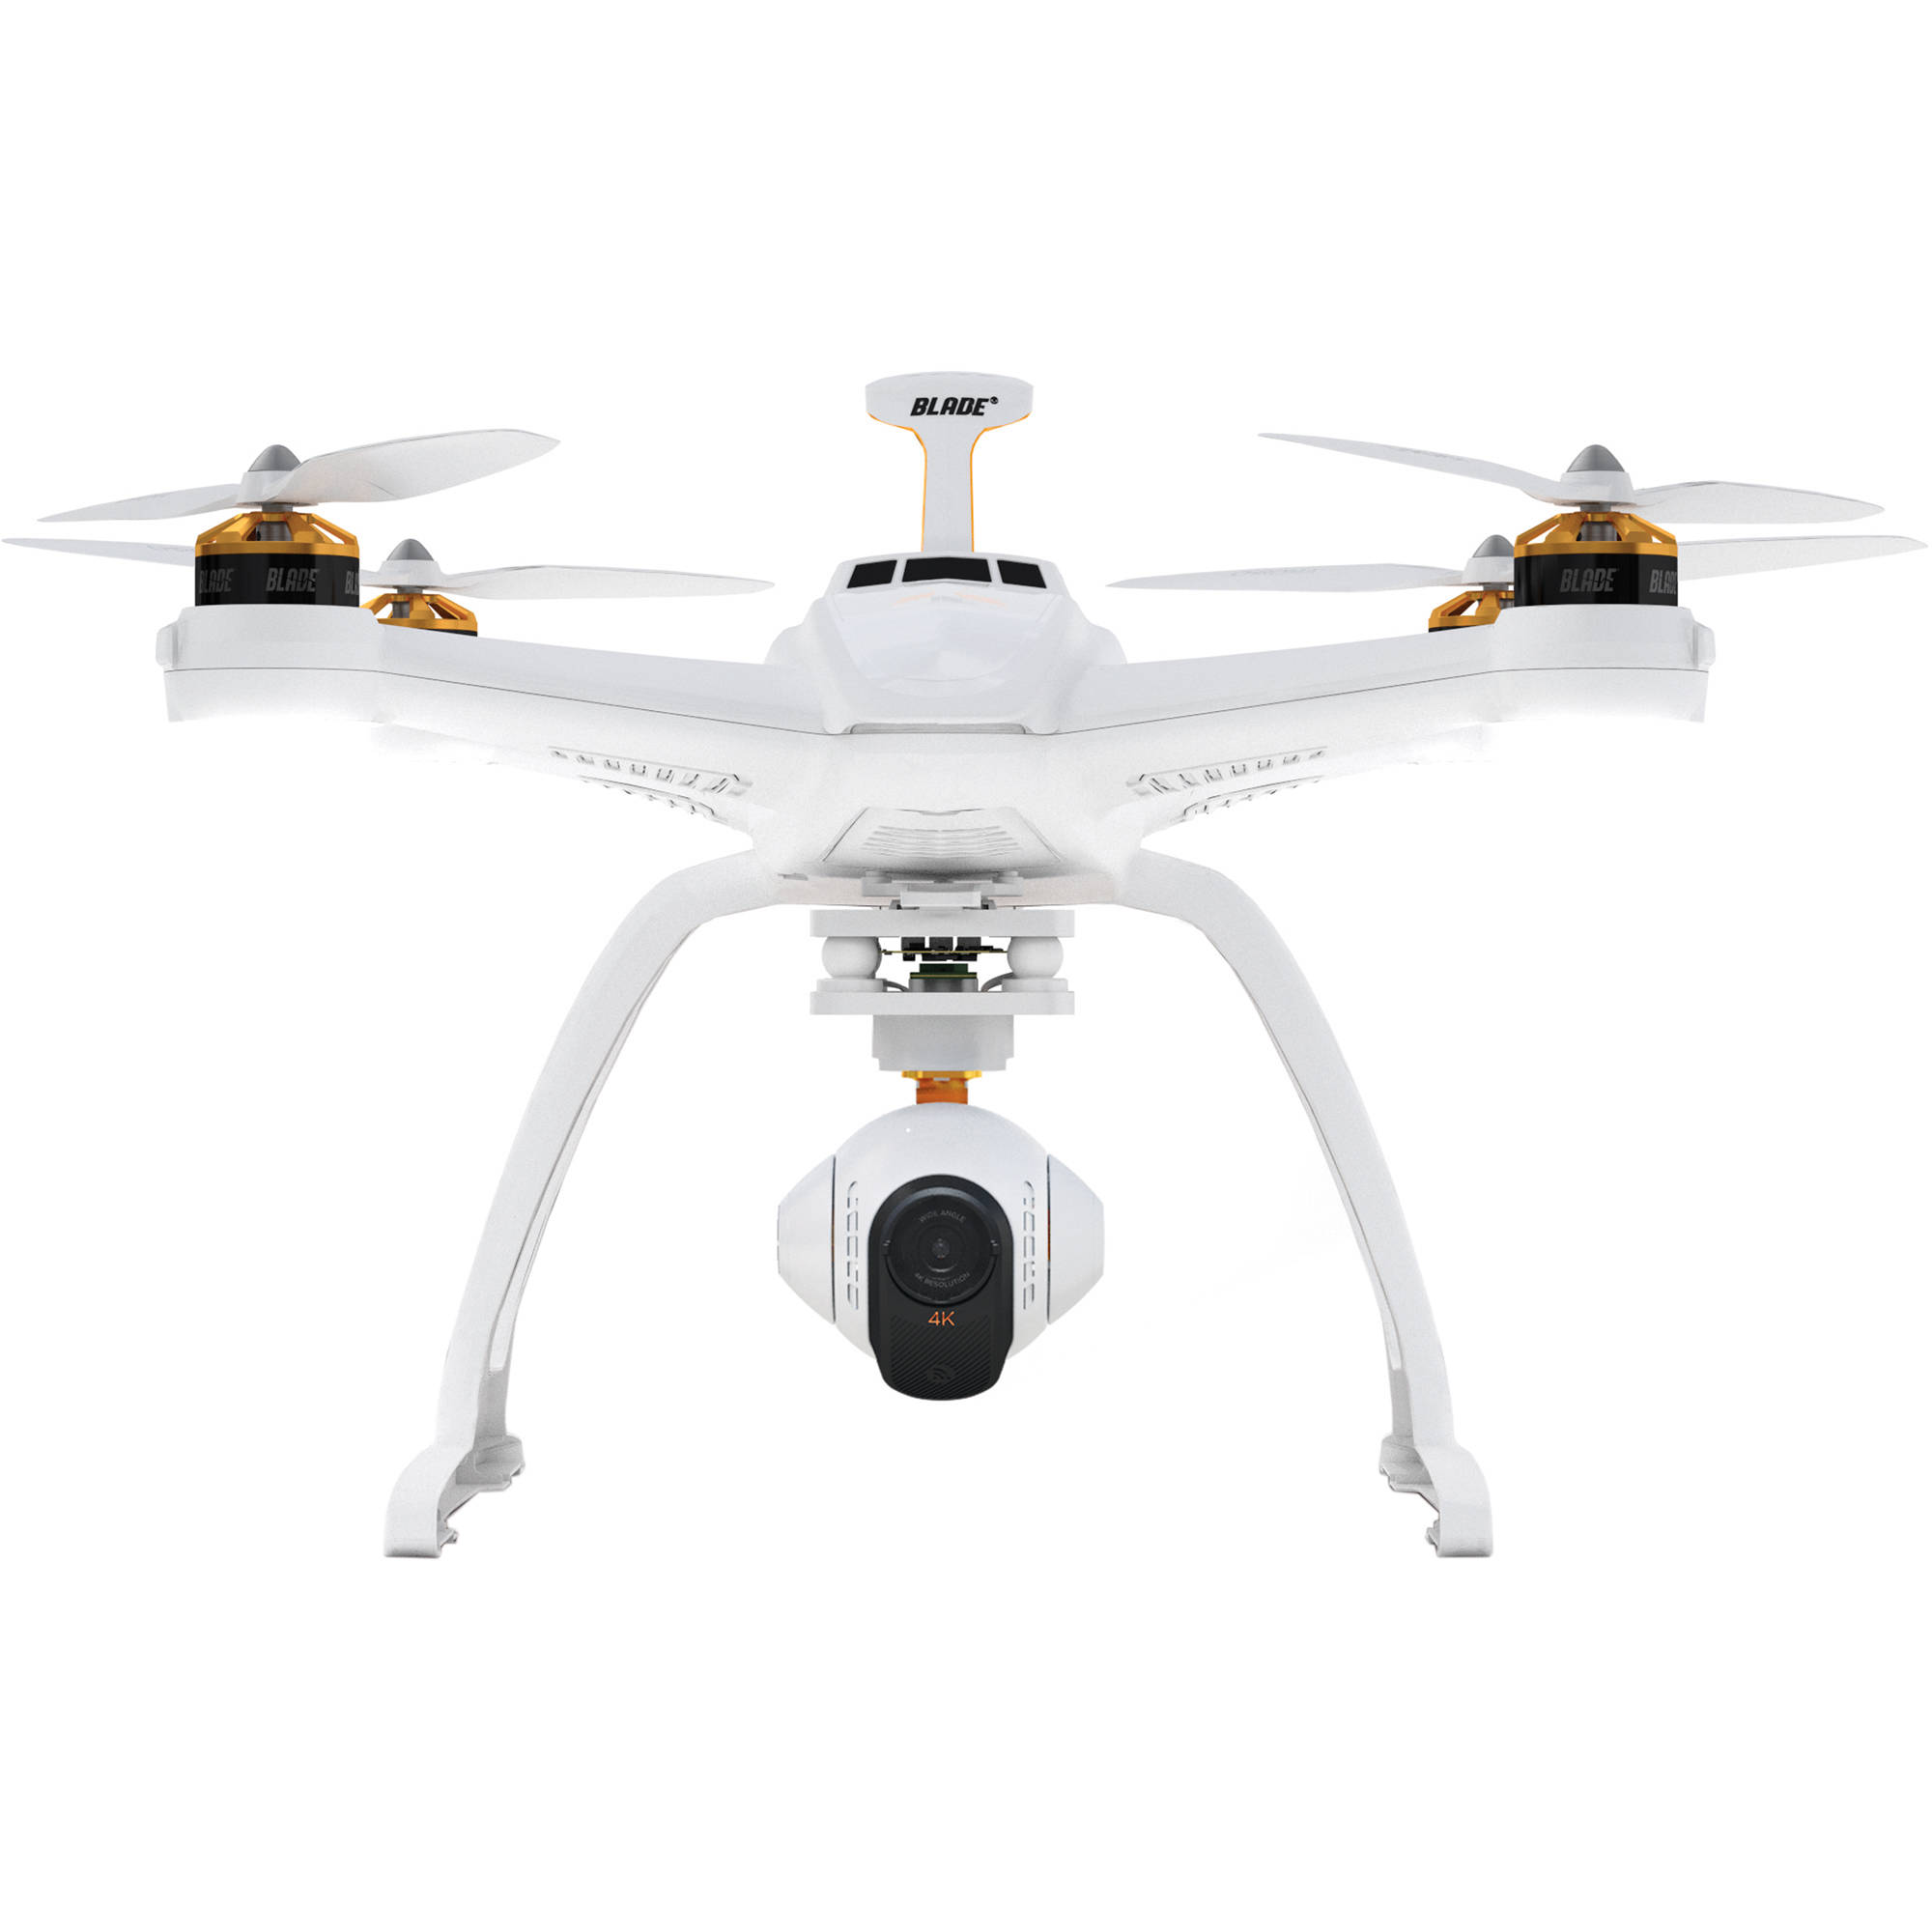 blade drones with Blade Blh8675 Chroma Camera Drone With on Blade blh8621 cgo2 gb 1080p60 camera with also Lapd Helicopter Patrols moreover Betaflight Configurator 1 5 likewise Huawei Lte Mya L13 Y5 Pro in addition 11041636.